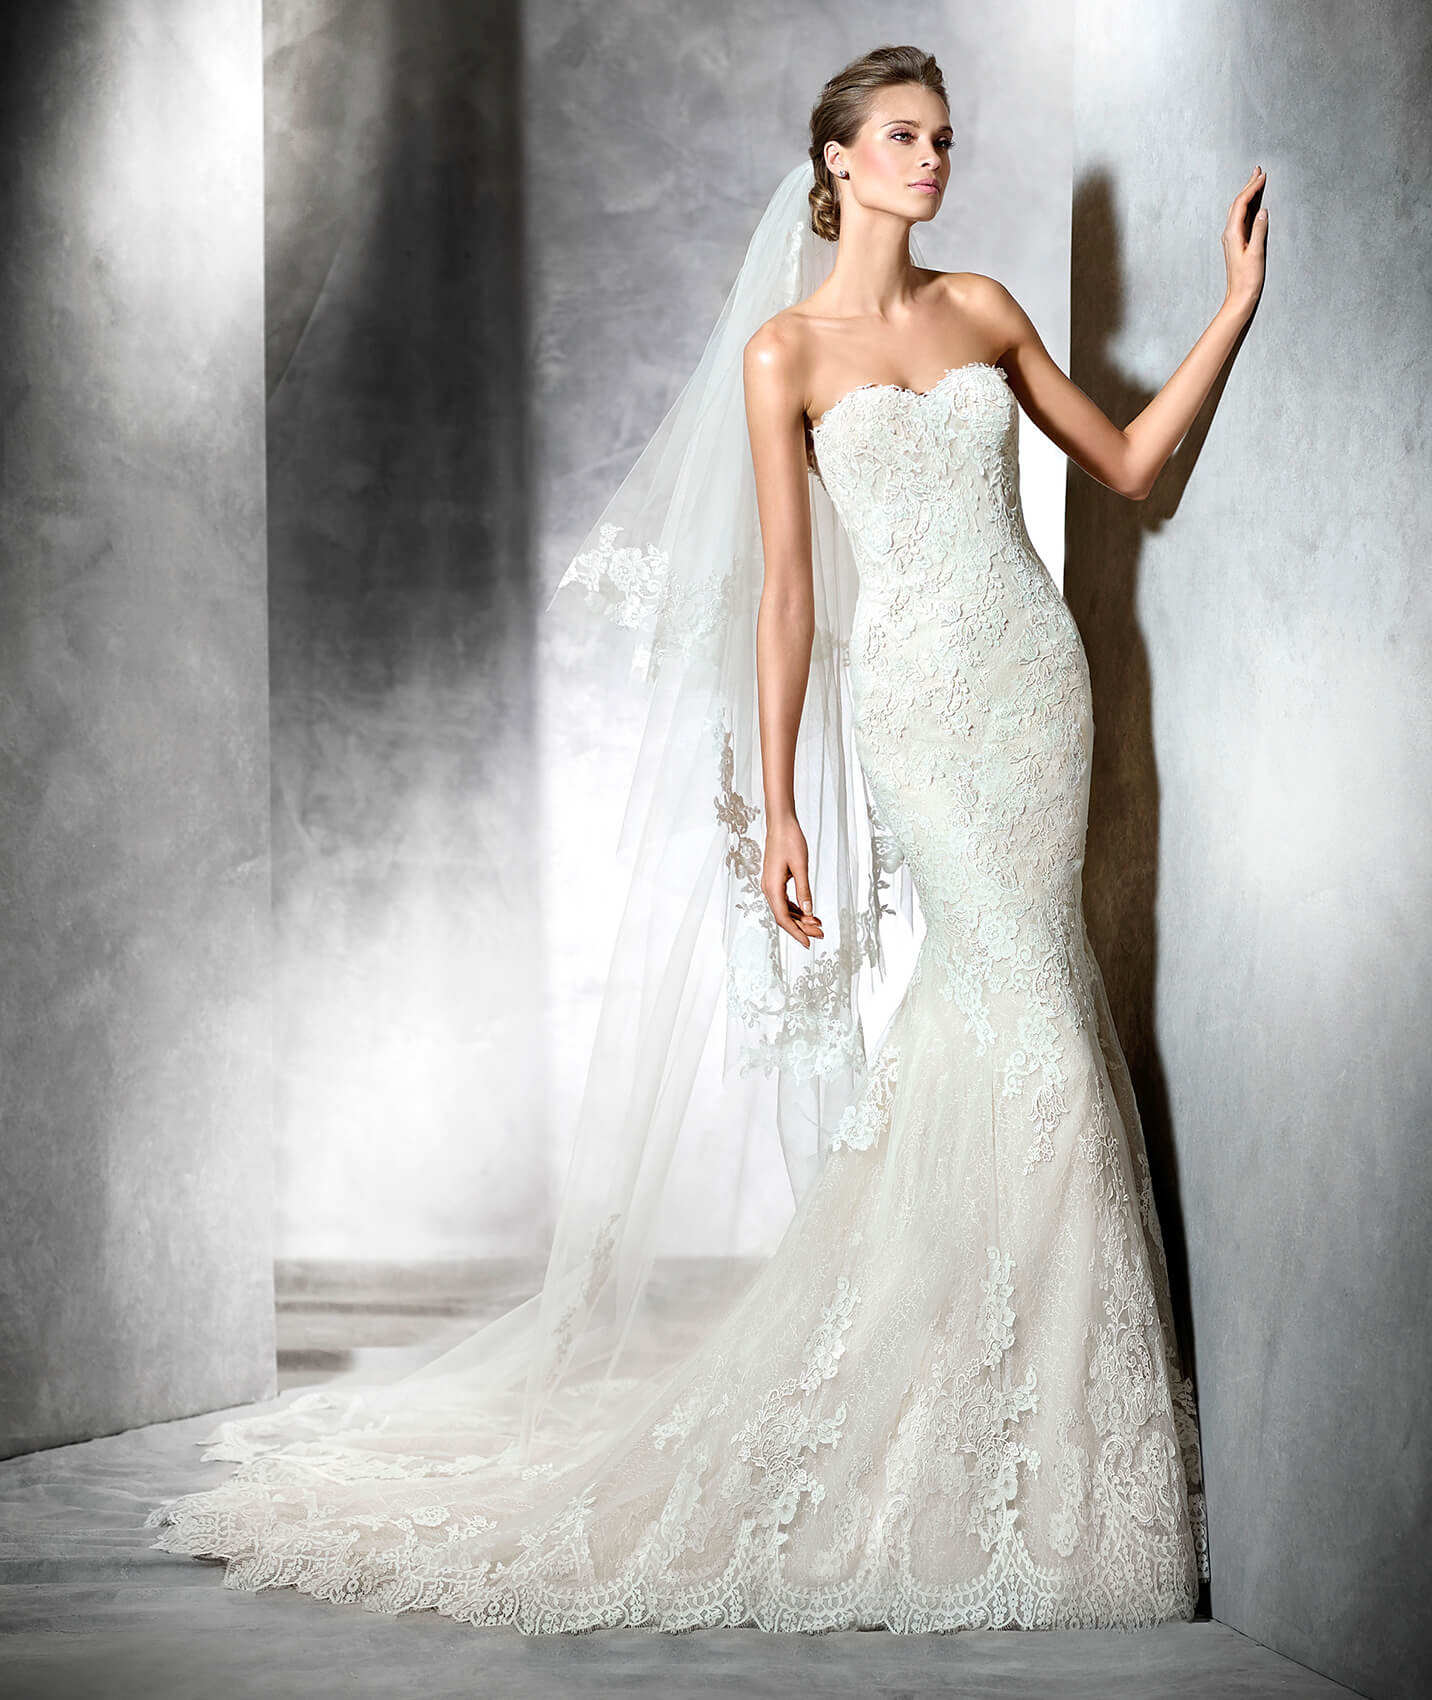 96f6d92cb89 Pronovias Wedding Dresses Price Range - Gomes Weine AG